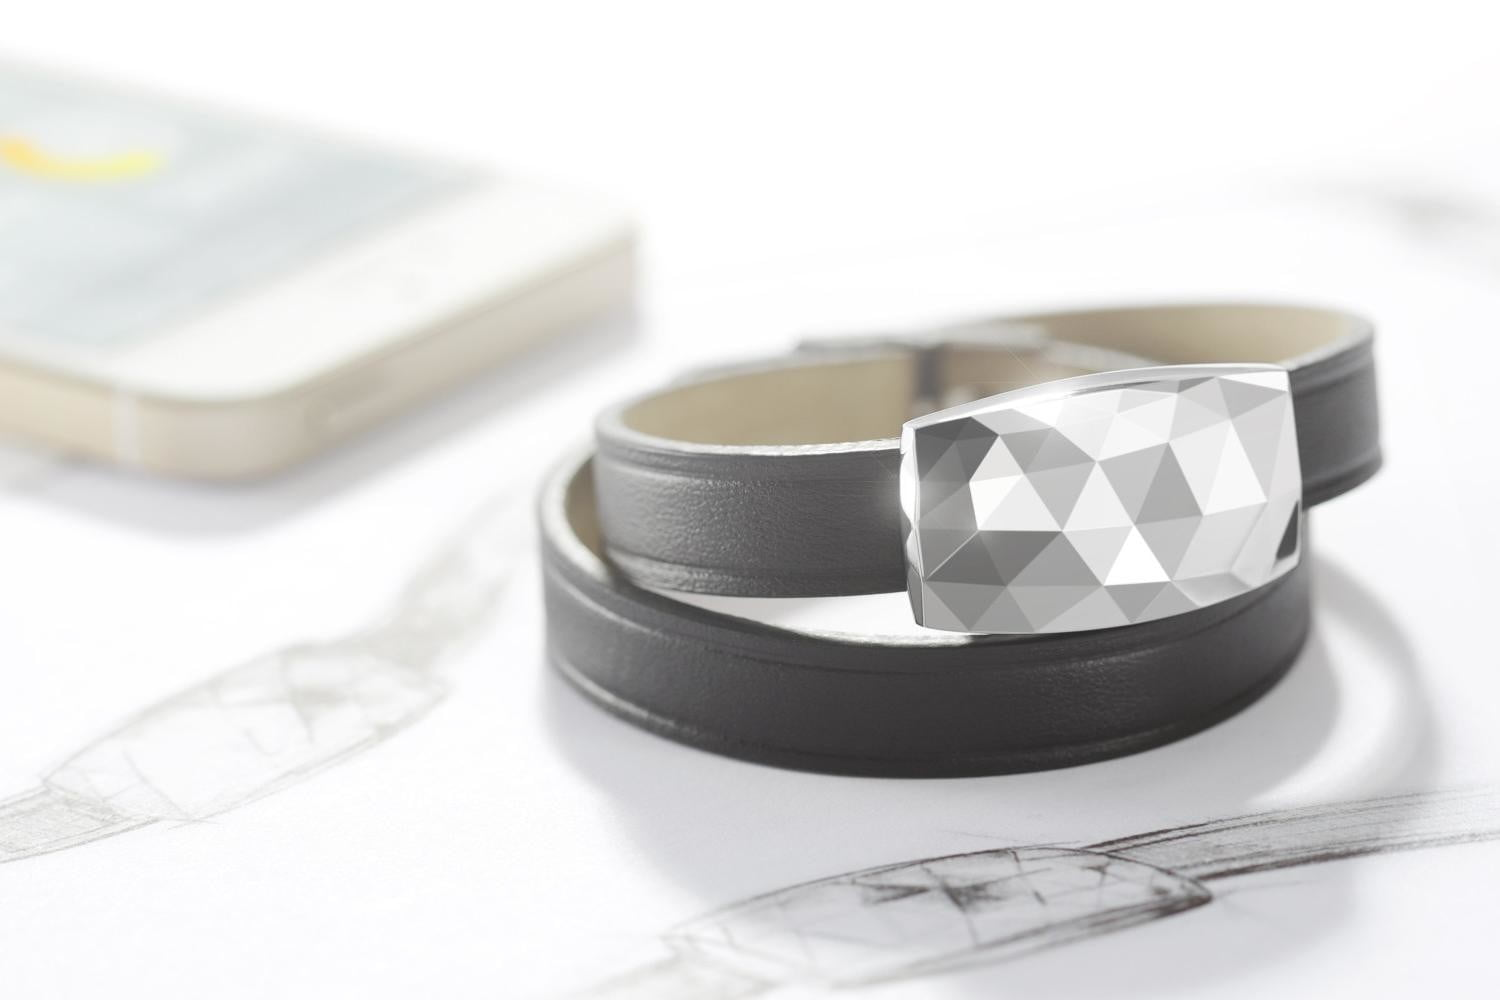 ba779396e07b 7 Pieces of Jewelry that Double as Fashionable Tech